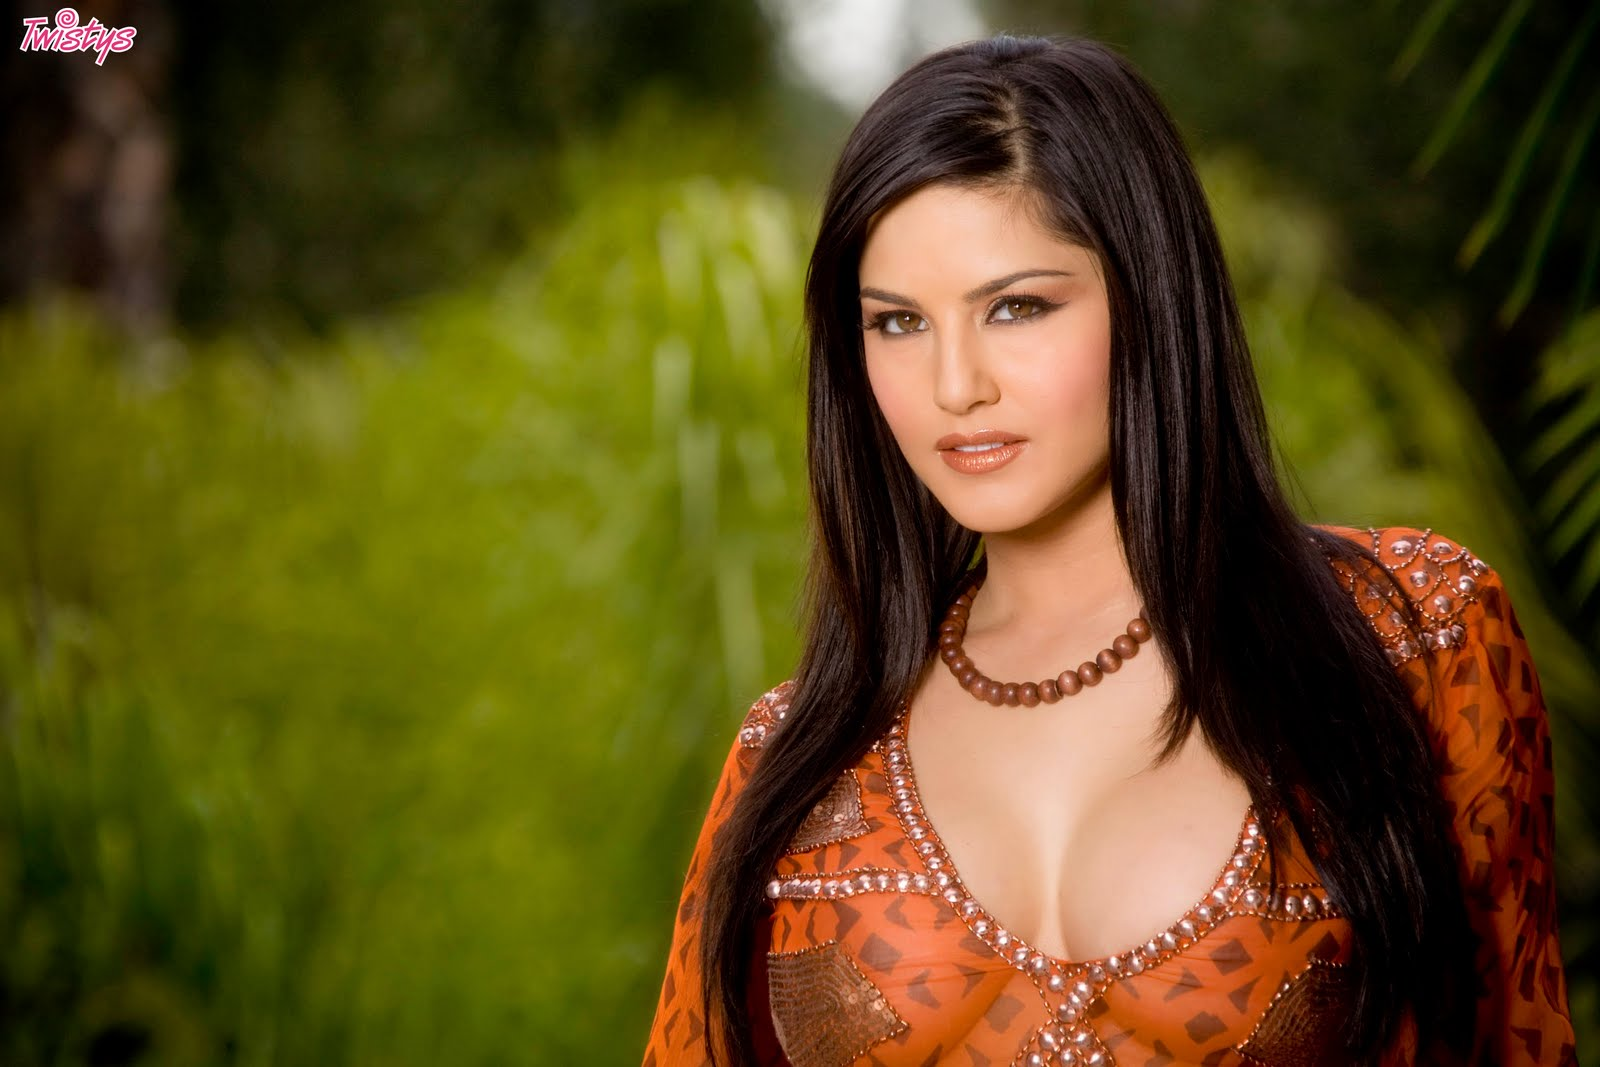 Sunny Leone Free Hd Wallpapers Sunny Leone Hd Wallpapers